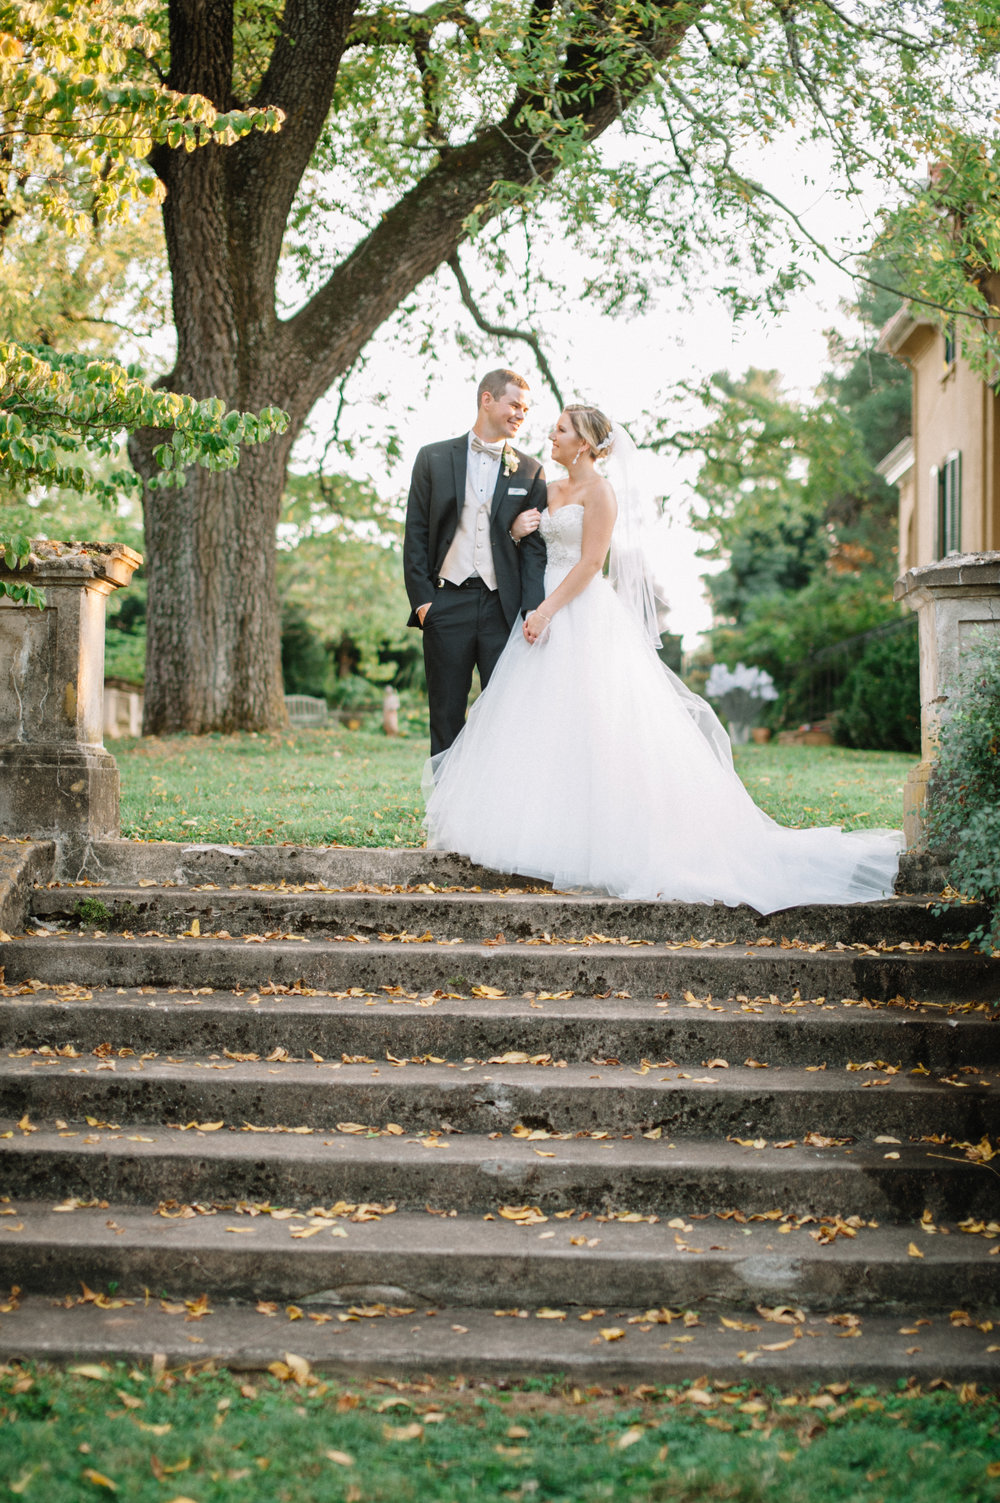 middleburgweddingphotographer